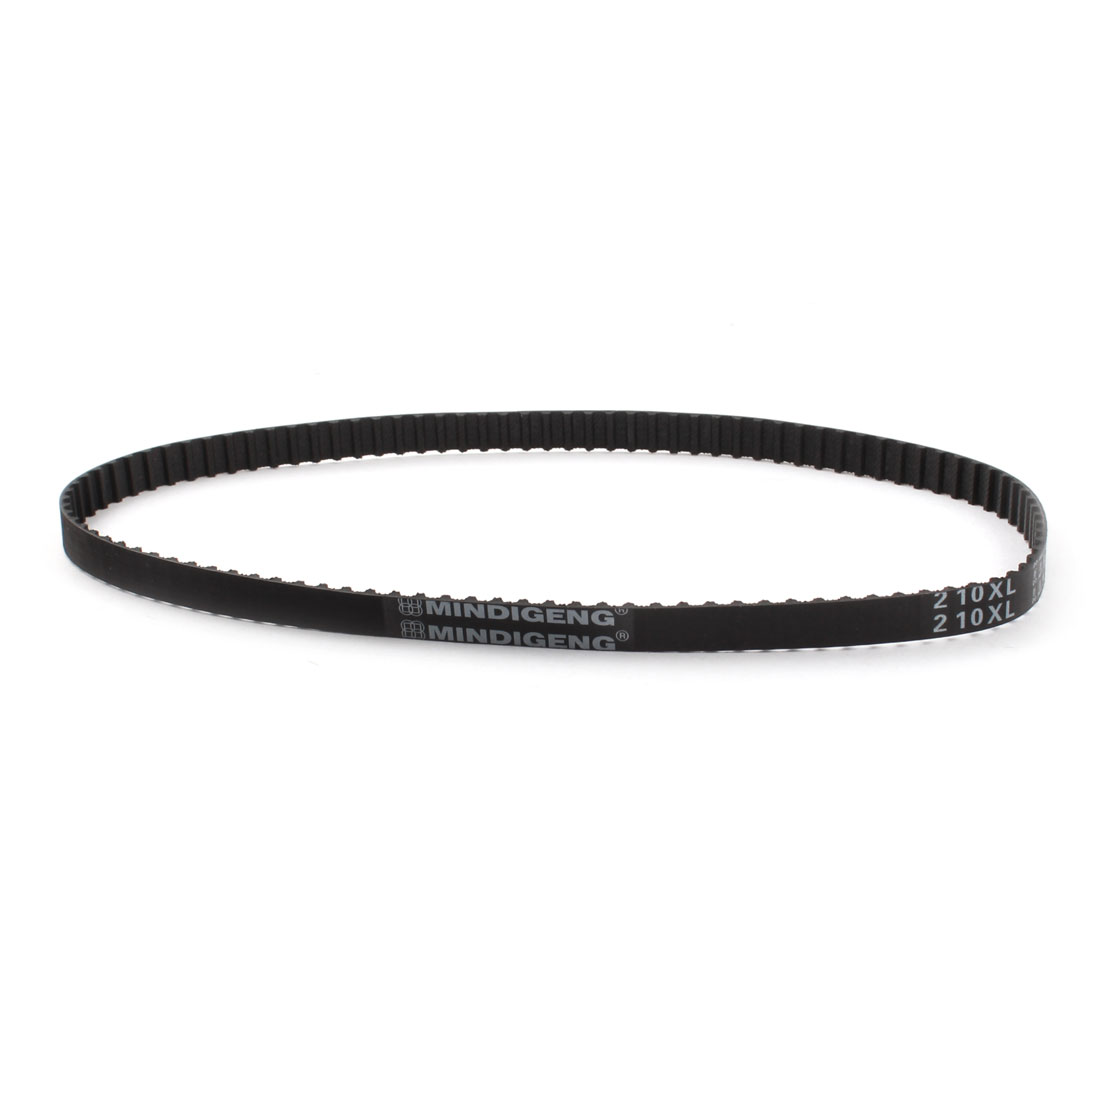 "210XL 21"" Girth 5.08mm Pitch 105-Teeth Black Rubber Industrial Synchro Machine Synchronous Timing Belt"